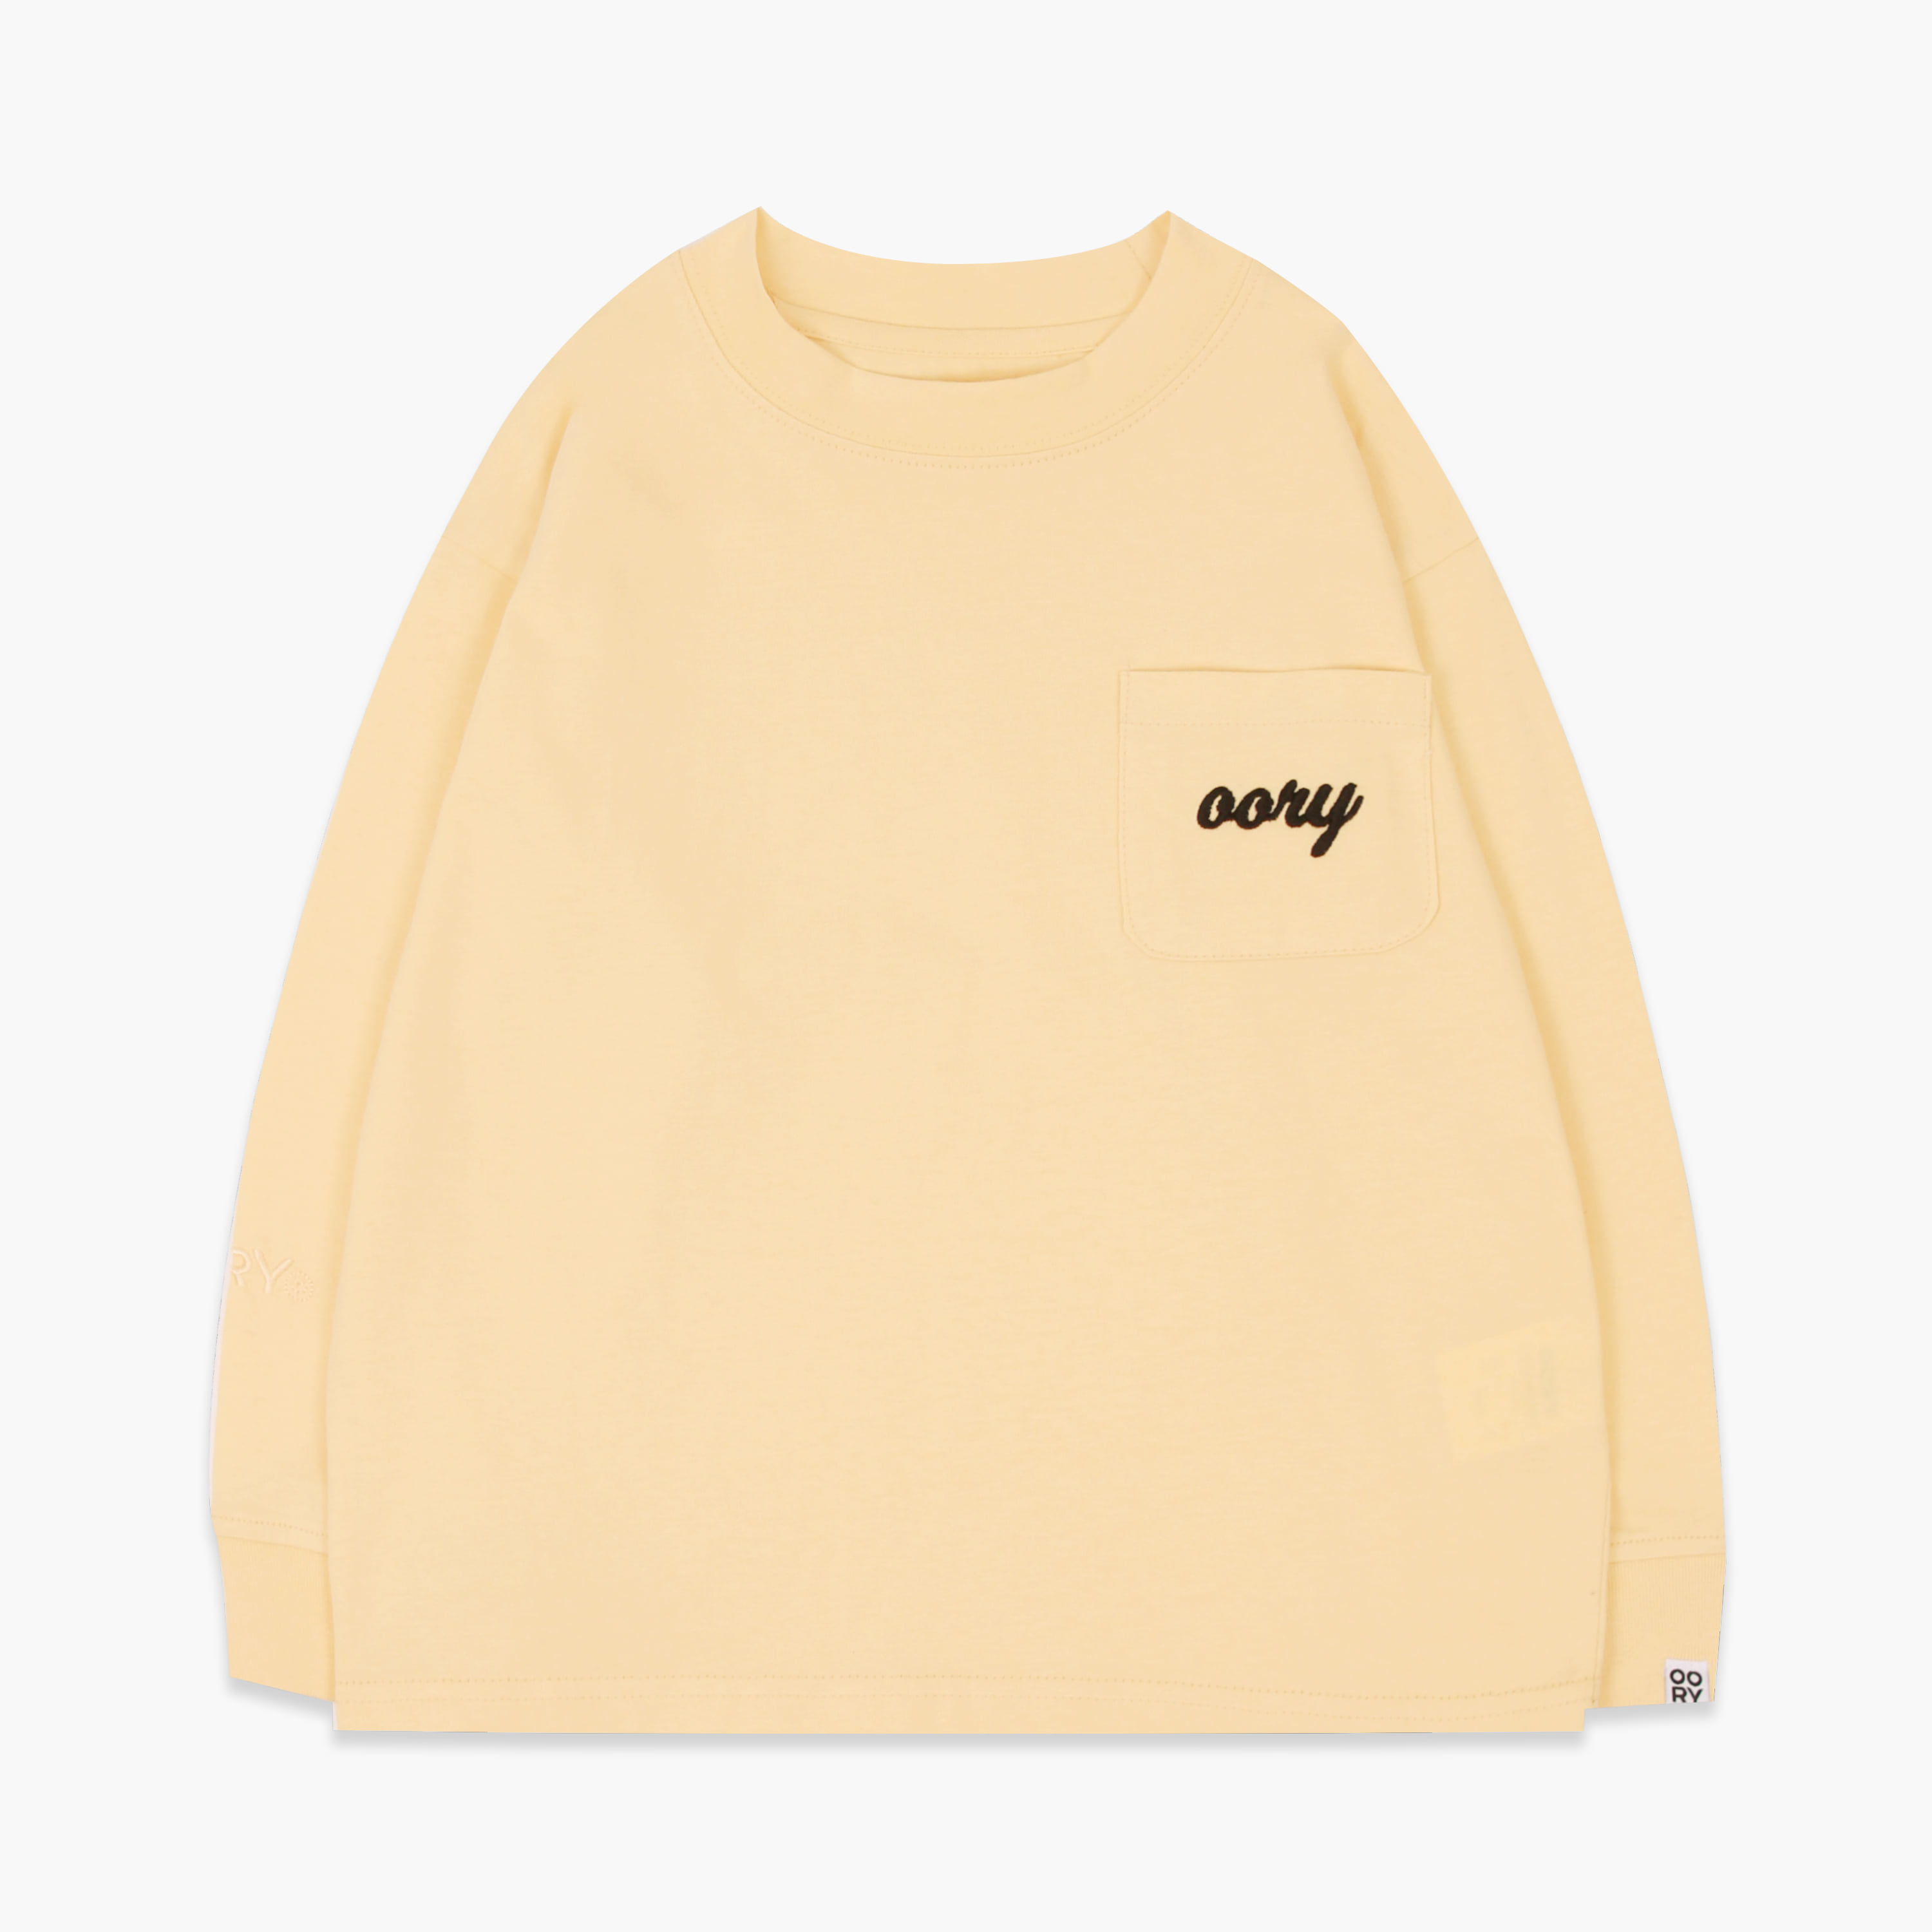 OORY color single t-shirt  - yellow  ( 2차 입고 )